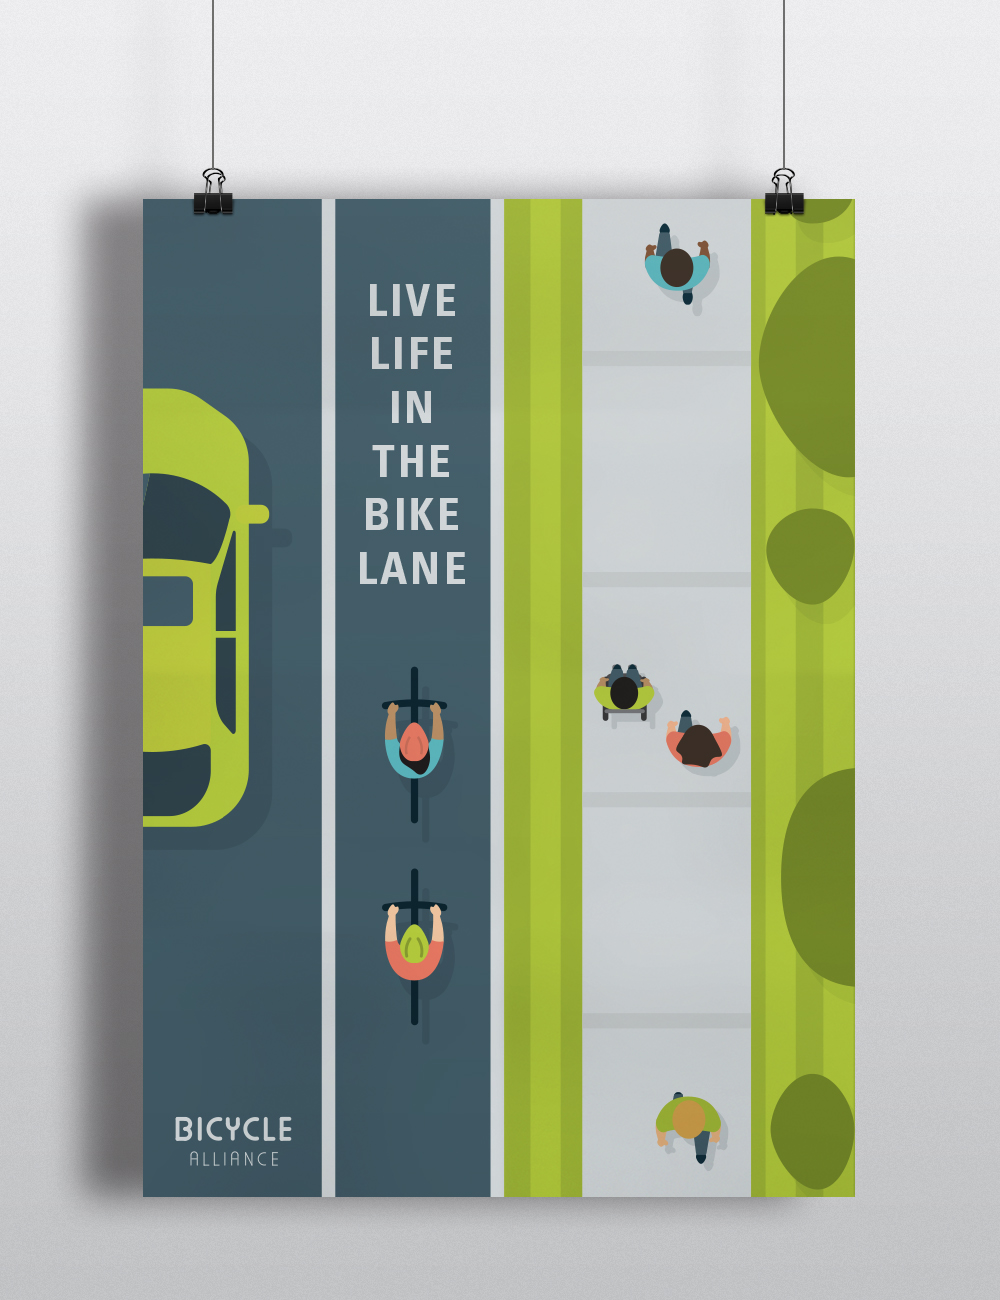 An ethos driven poster meant to appeal to bicyclists.